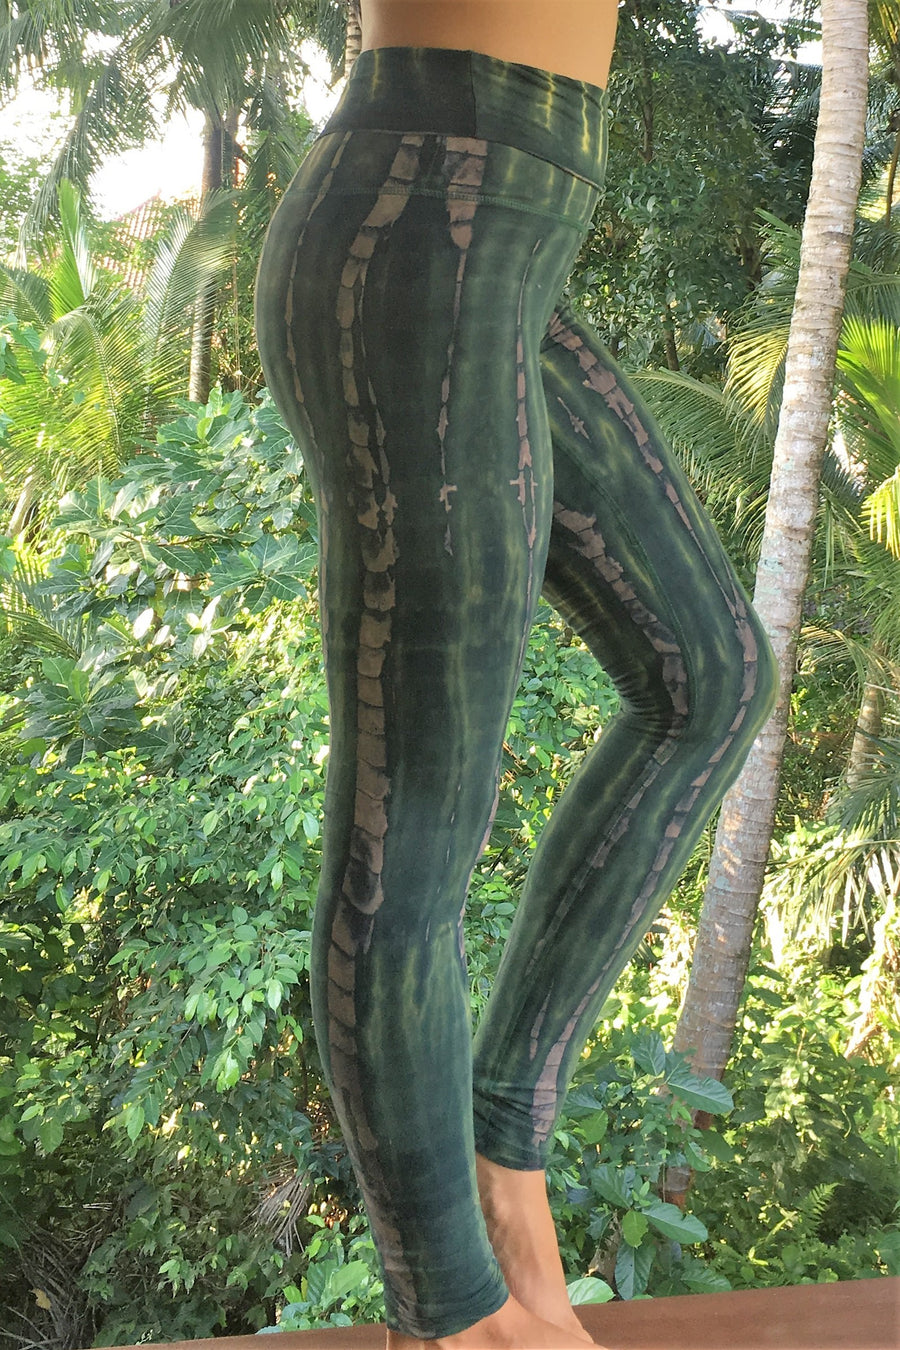 Side view of Organic Yoga Pants in RainForest tie dye with fold waist top can be worn high or folded down onto hips for custom fit. Green hues with beige streaks.